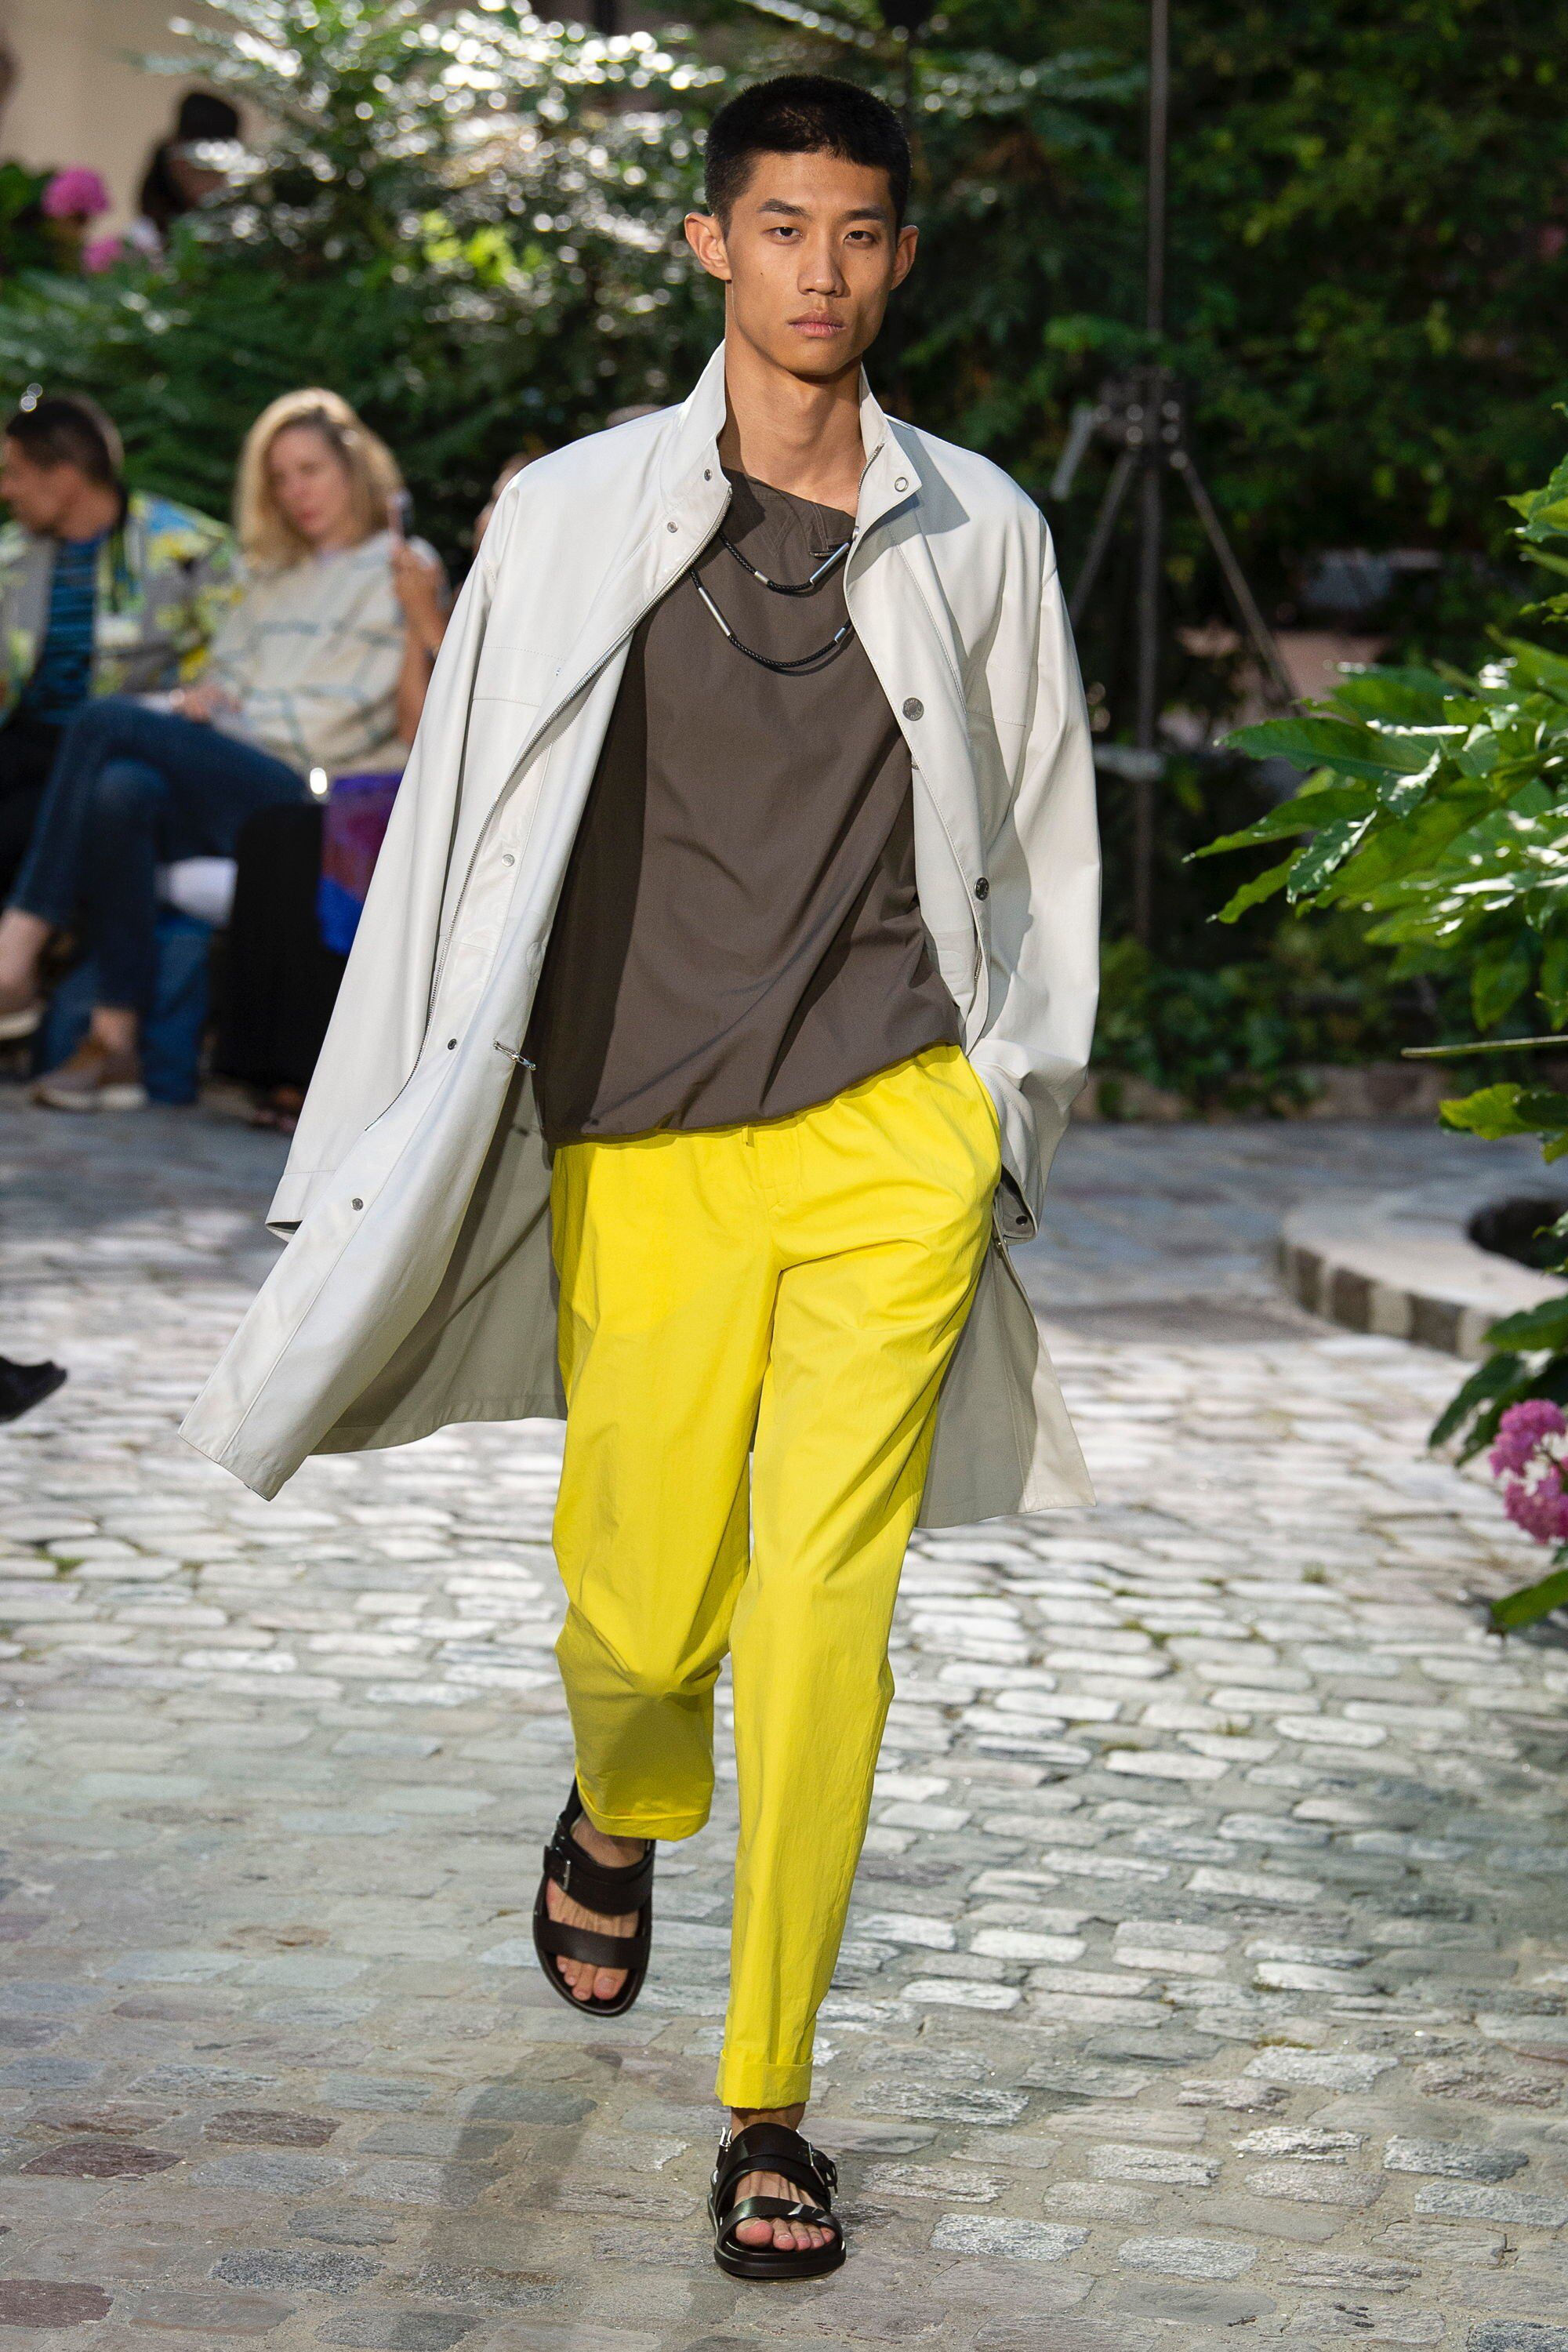 Hermes SpringSummer 2019 RTW Plays With Pops of Colors Fine Tailoring